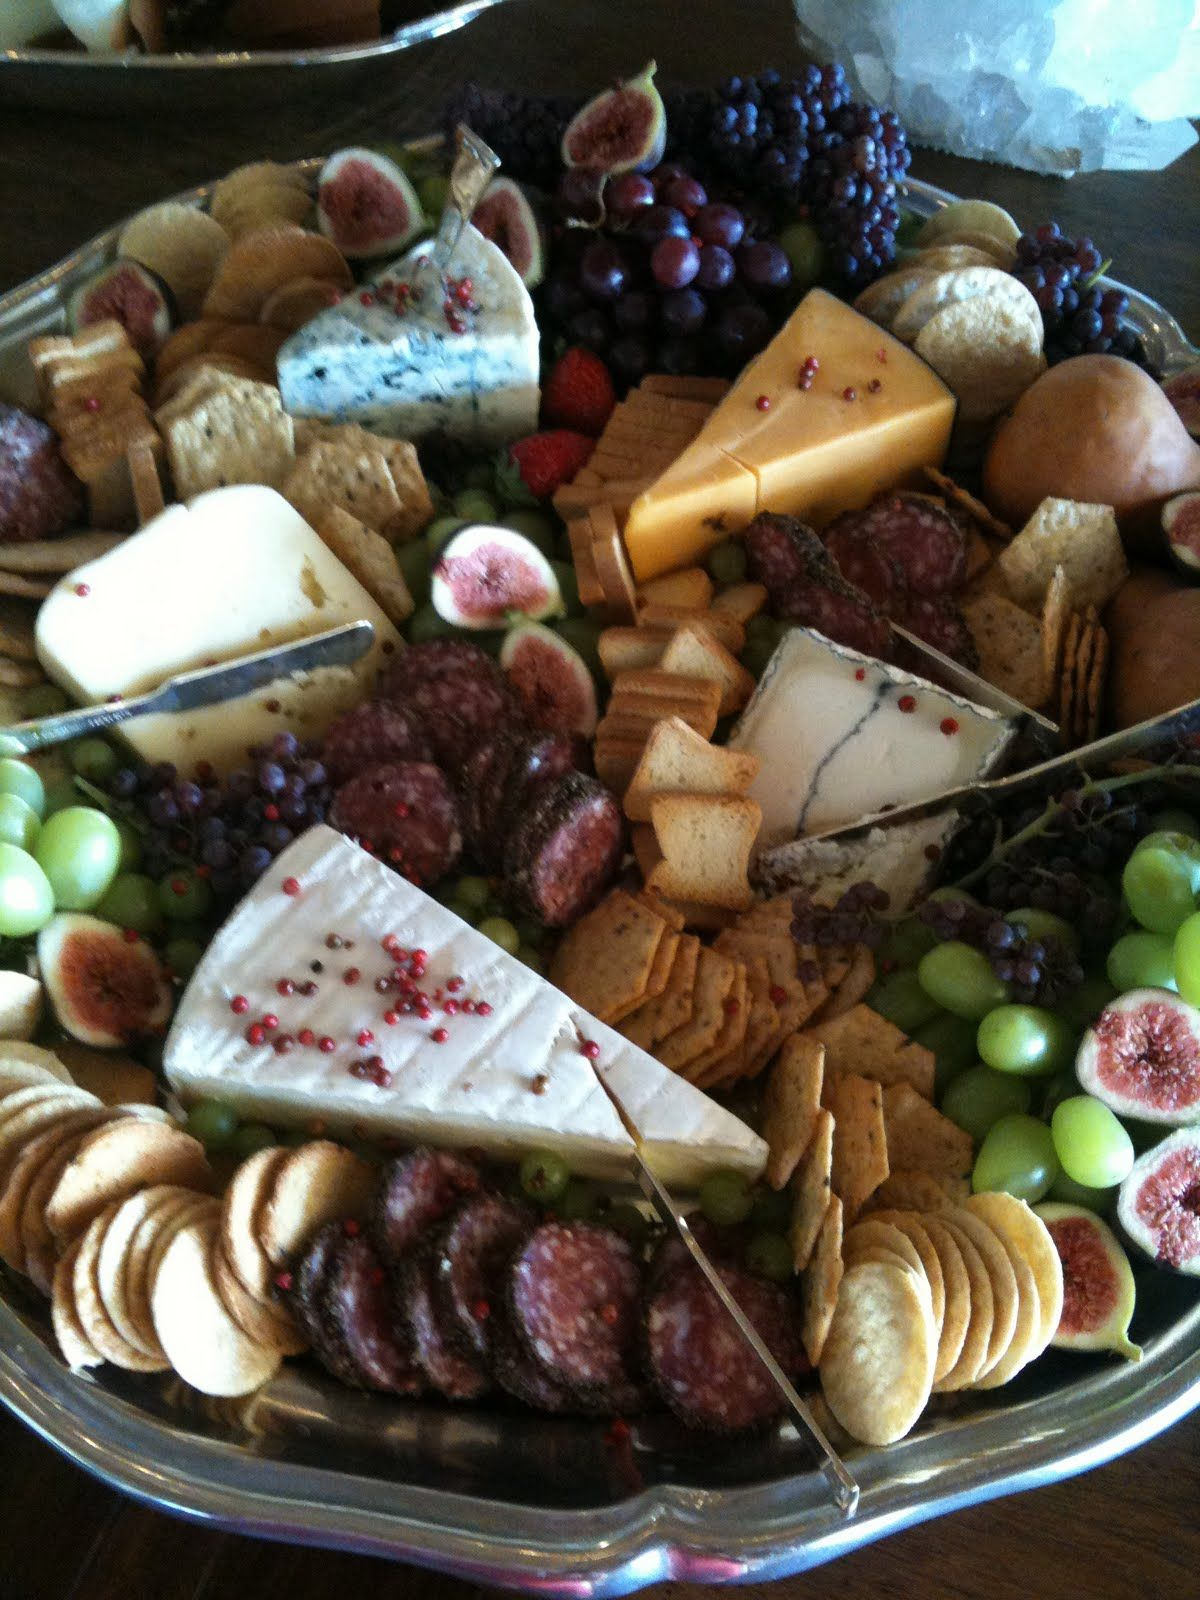 Maximum Impact Cheese Platter For all events a fruit/cheese platter is always elegant & Maximum Impact Cheese Platter: For all events a fruit/cheese platter ...